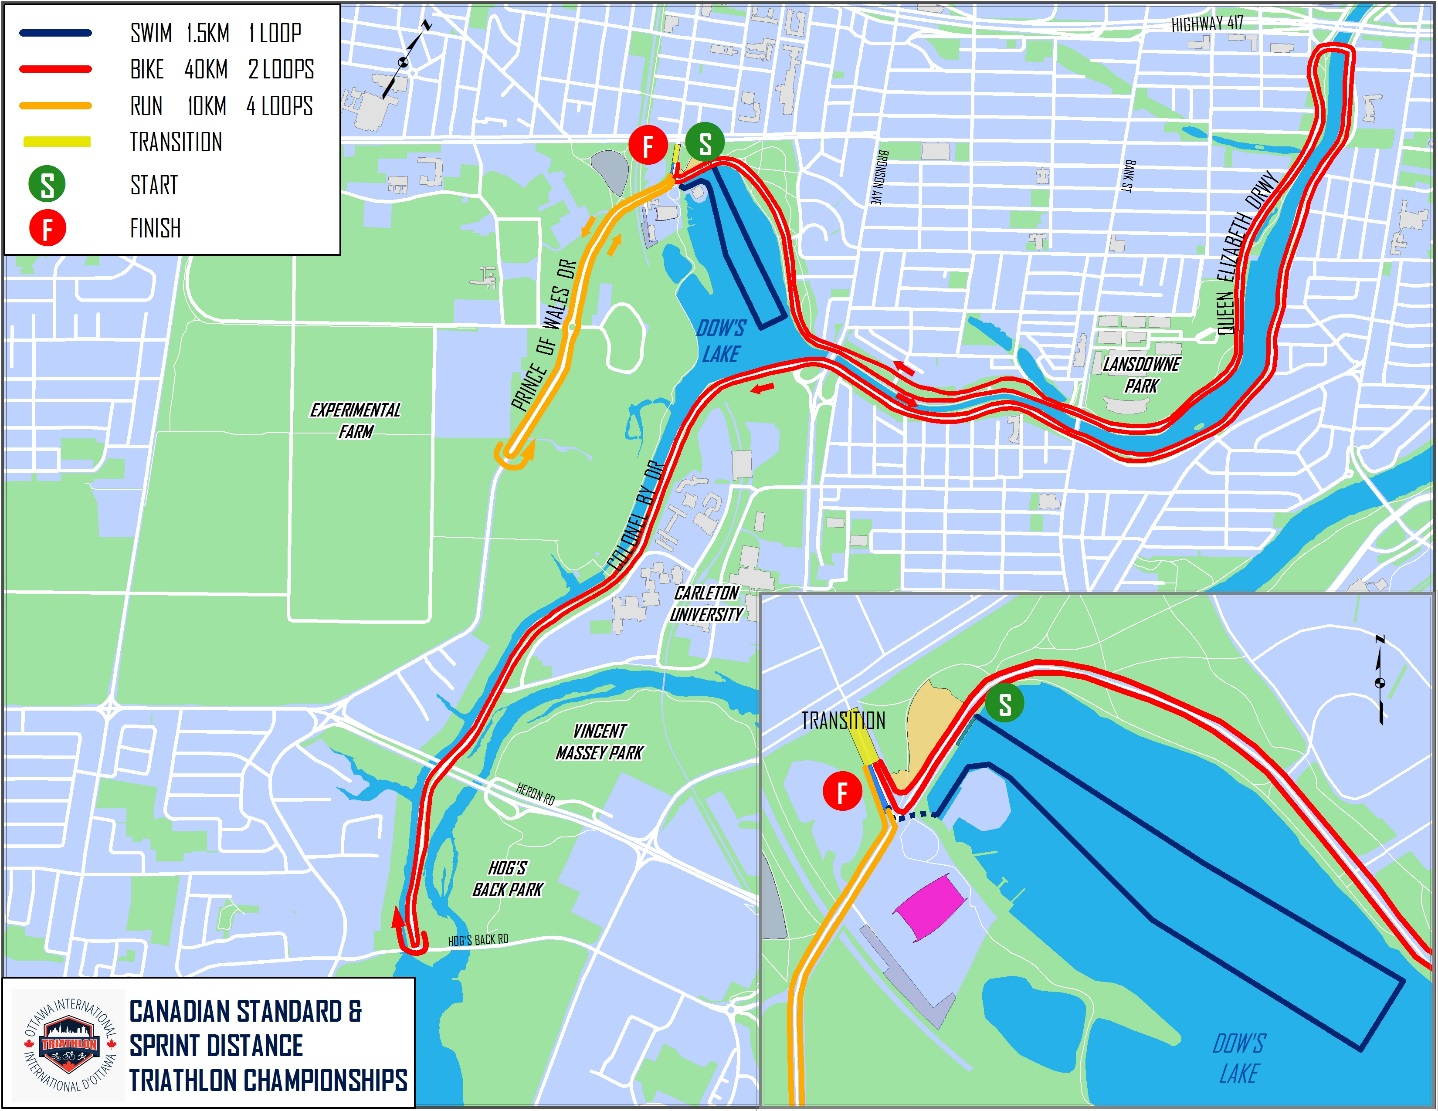 Canadian Standard Distance Triathlon Championships Course Map